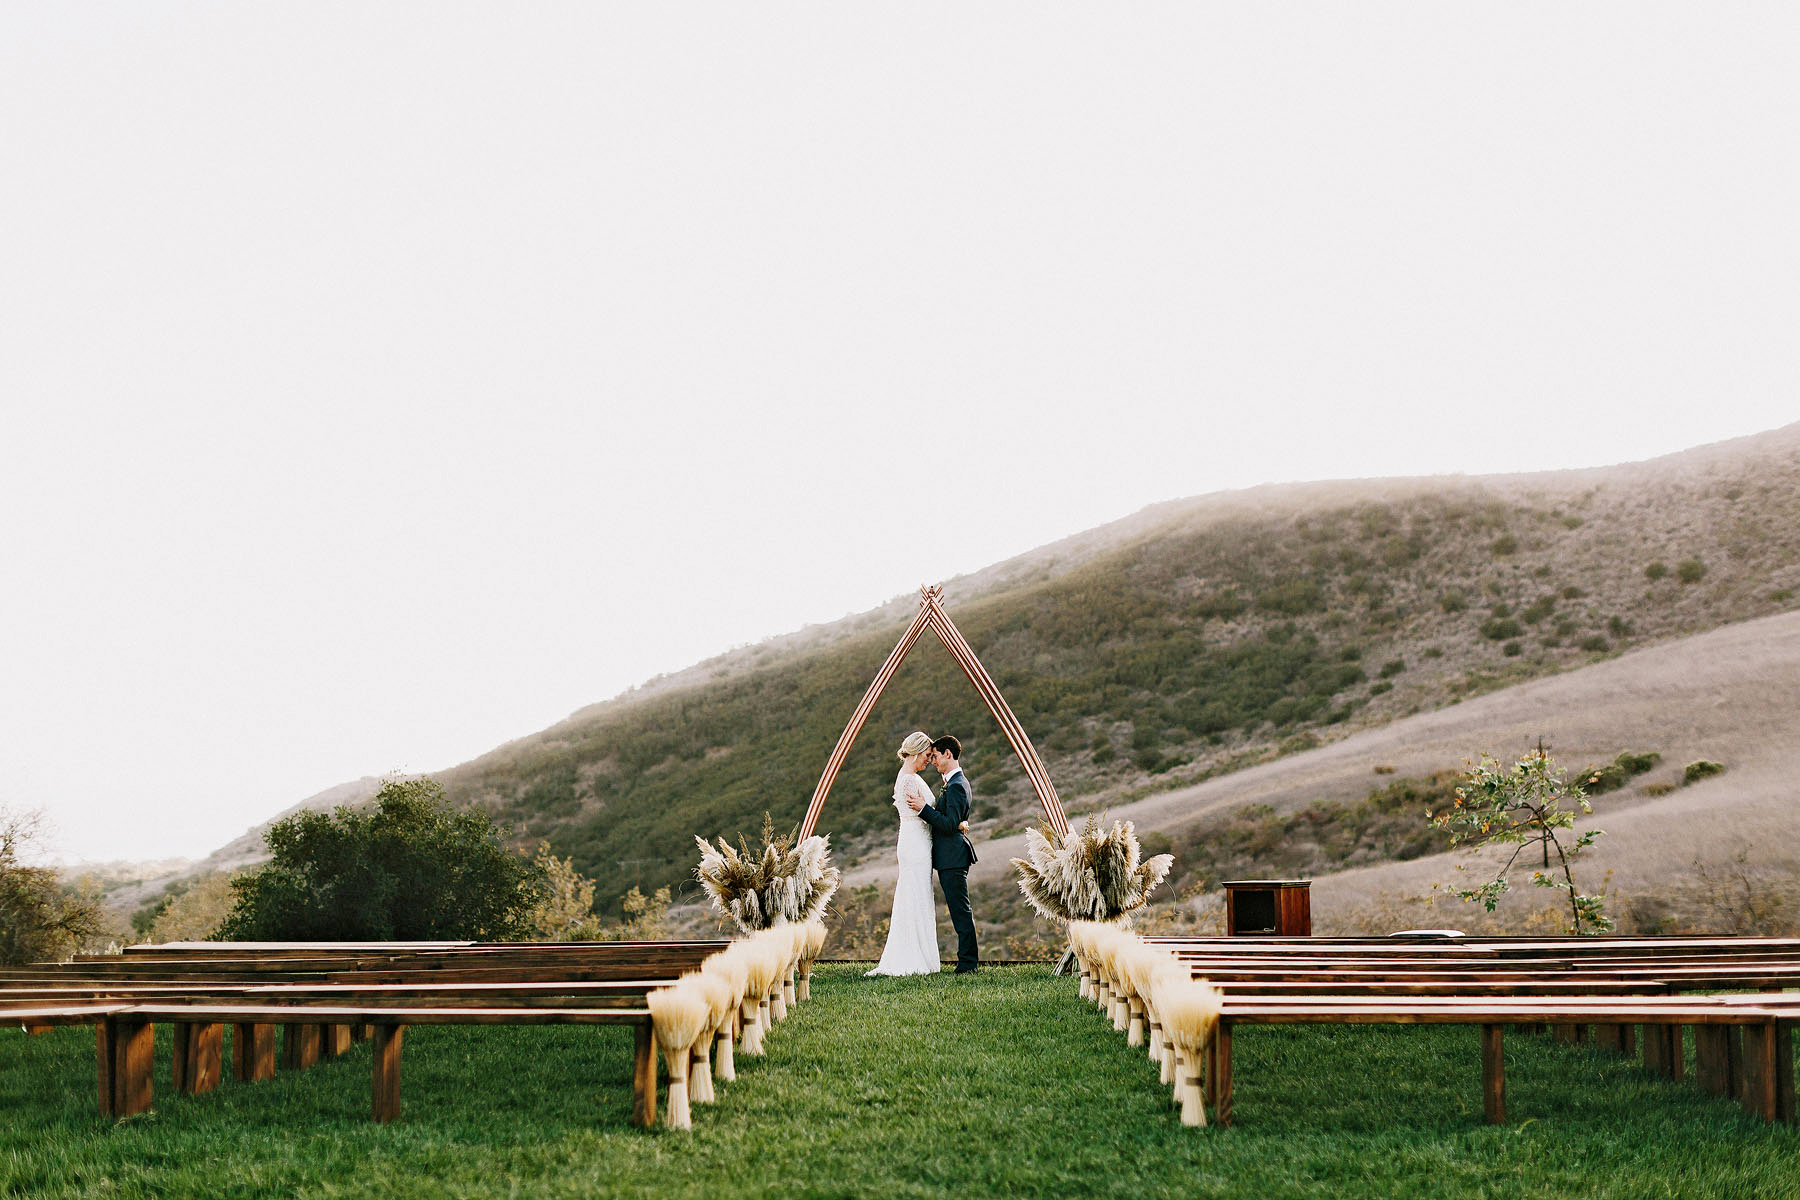 bride and groom at el capitan canyon in california